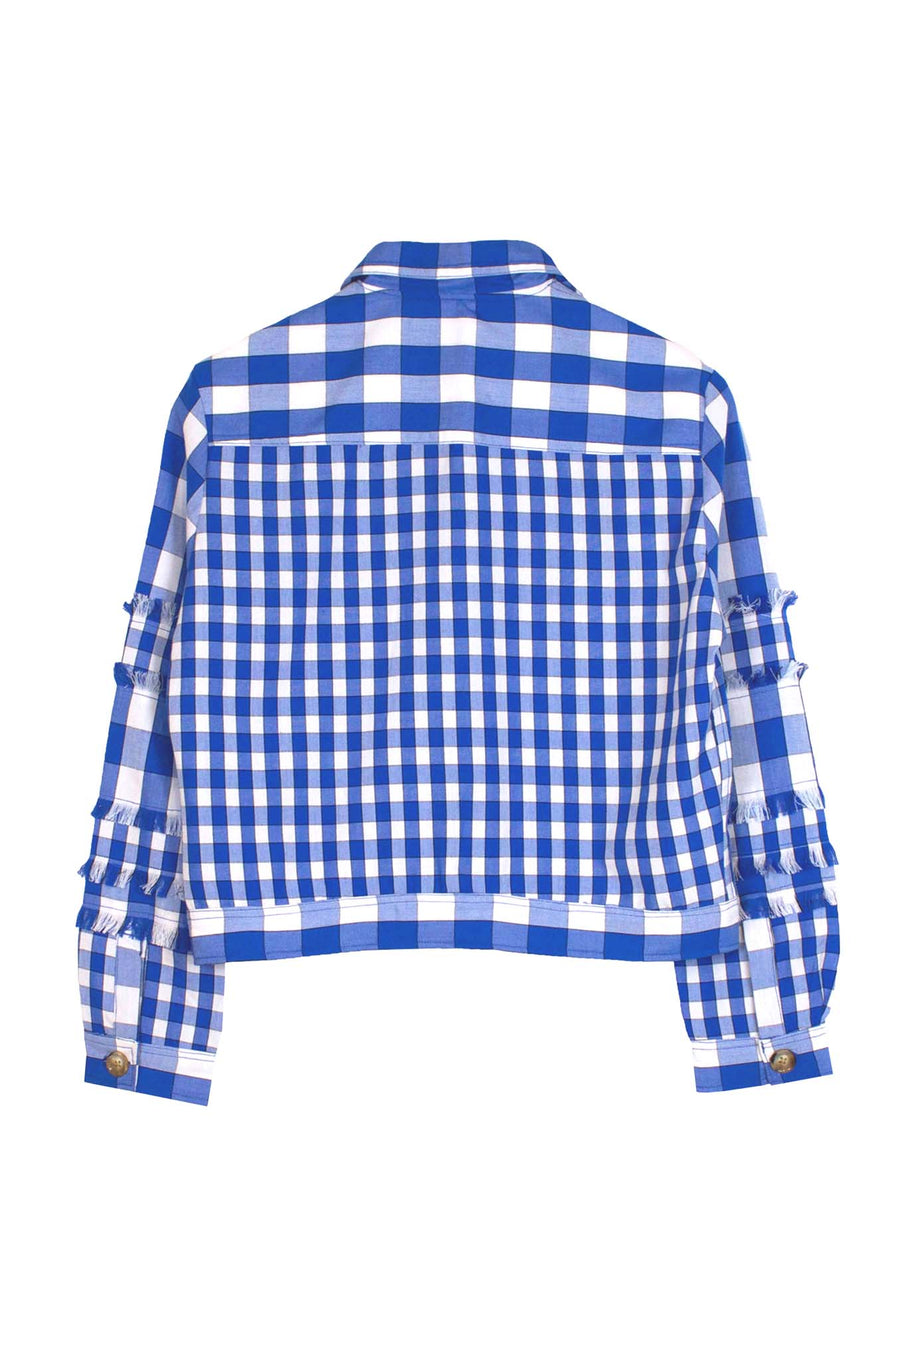 Blue Gingham Cotton Jacket